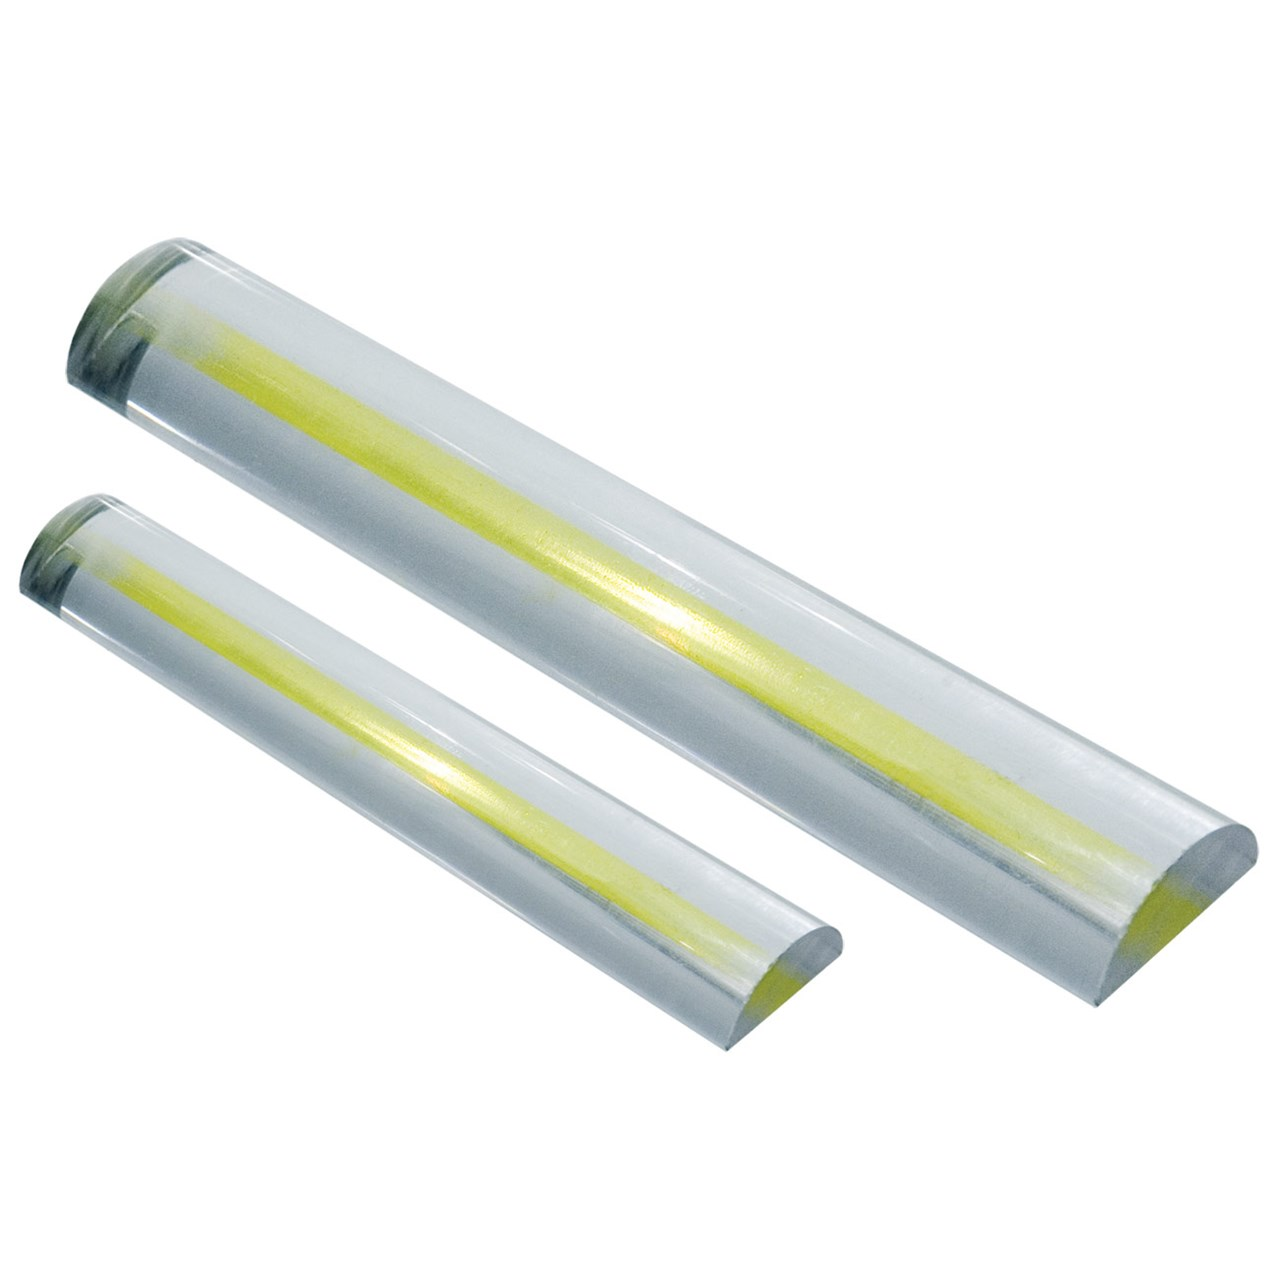 EZ Magnibar with yellow tracker line - Combo - 6 inch and 9 inch